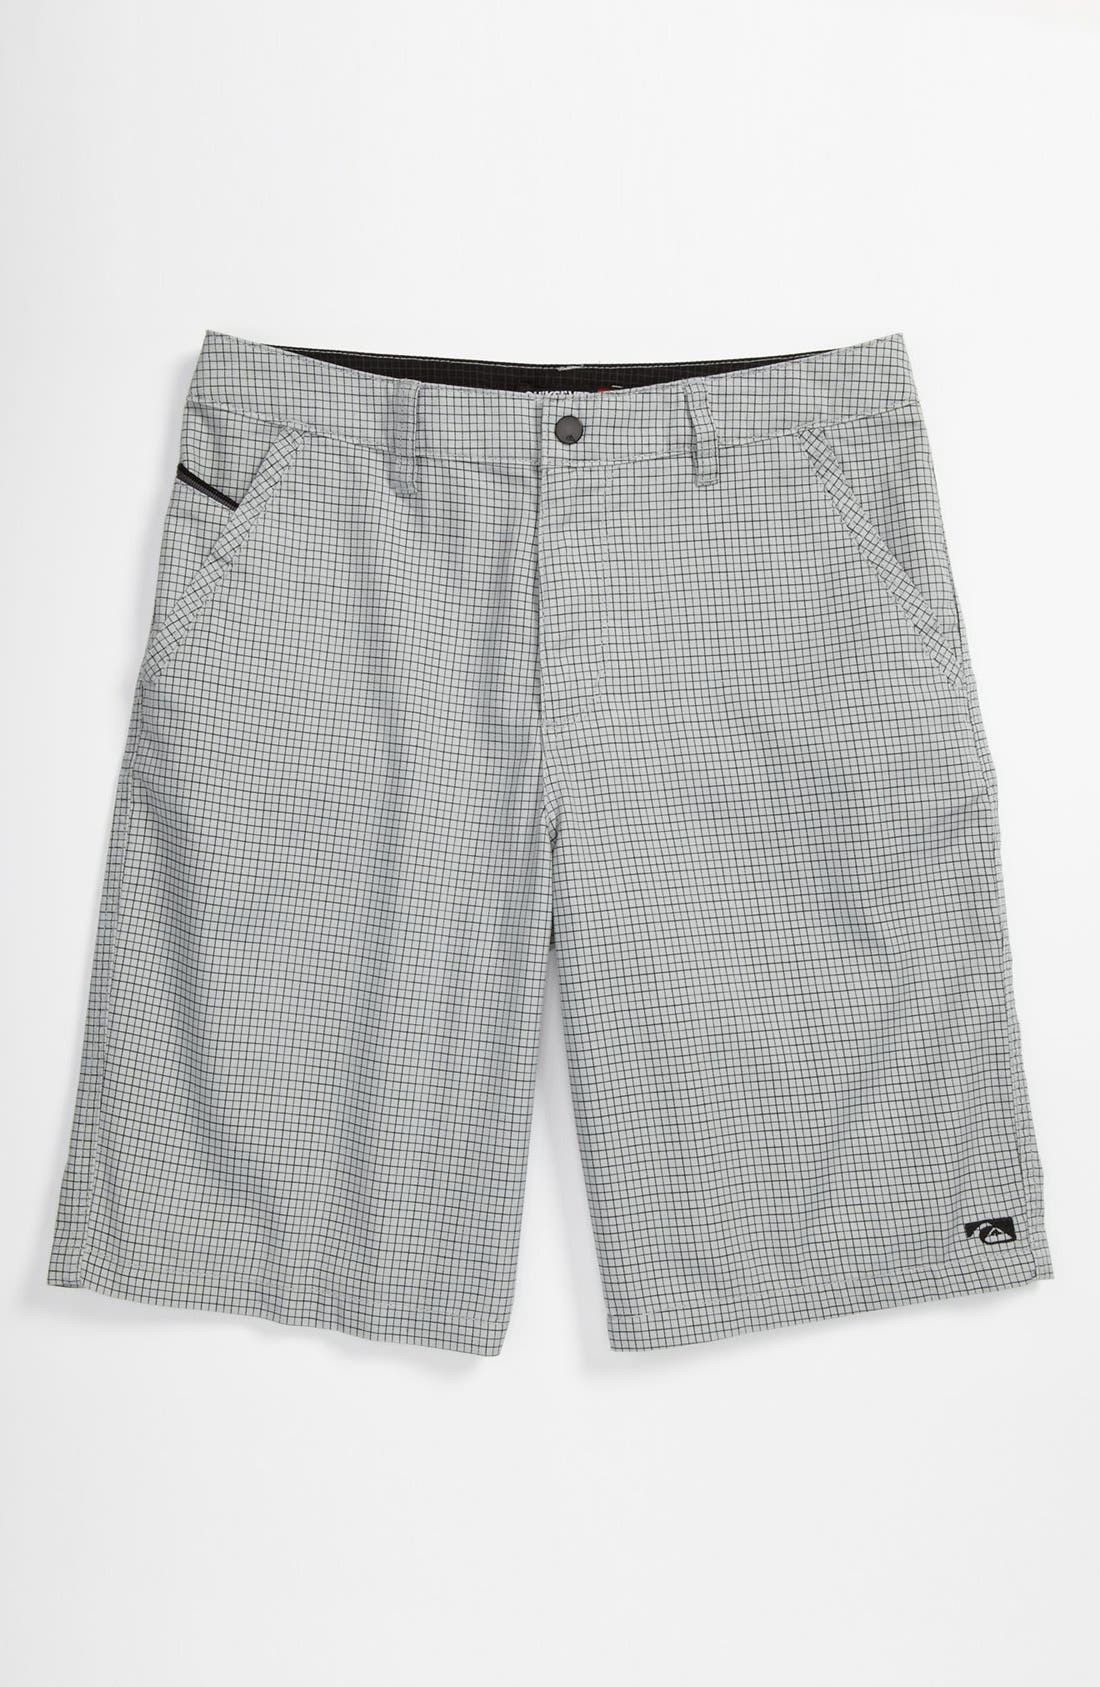 Main Image - Quiksilver 'All In' Shorts (Little Boys)